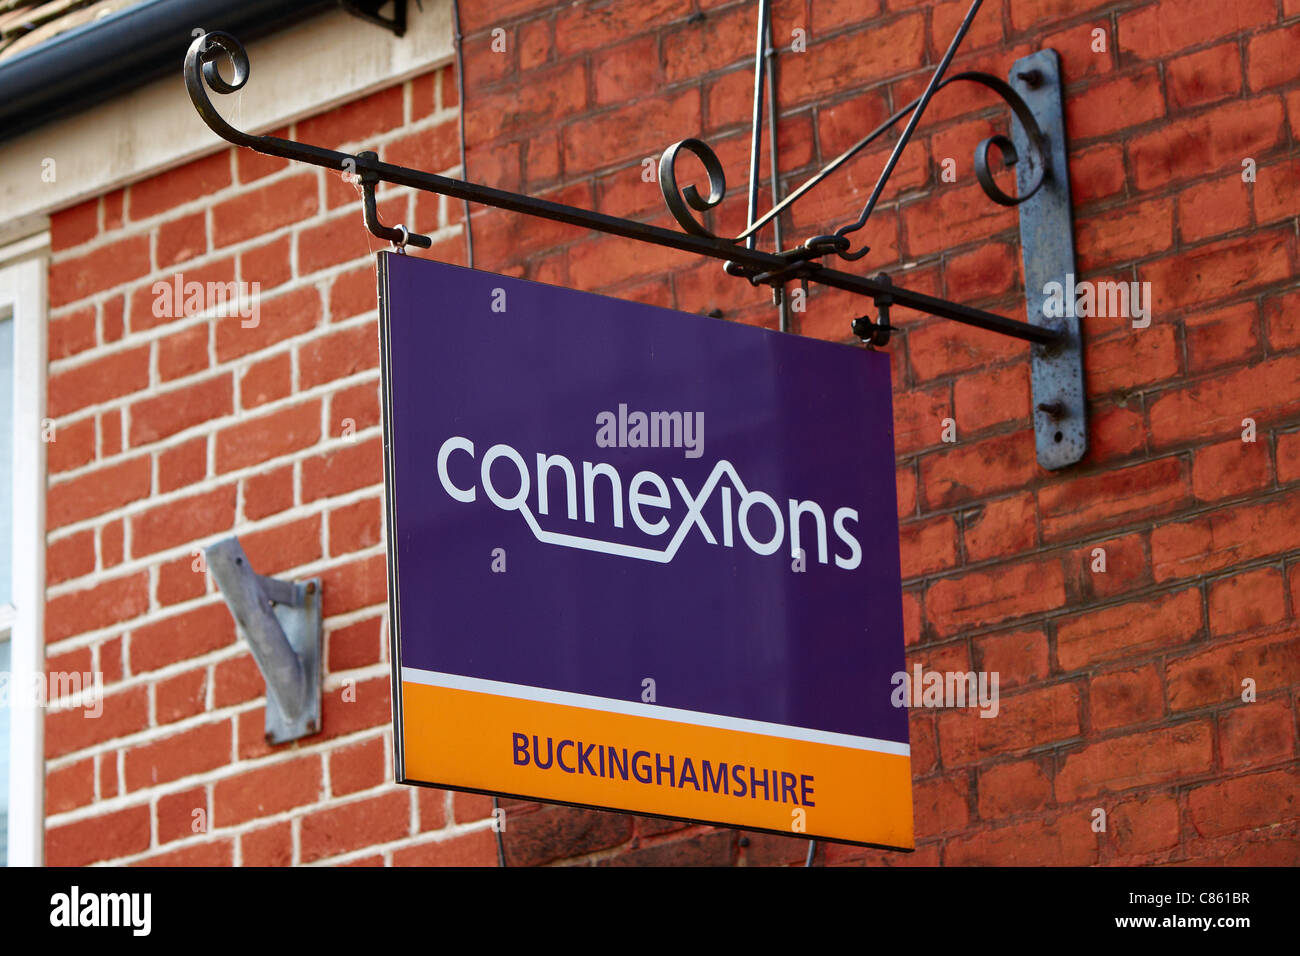 A general view of the Connexions offices in Aylesbury, Buckinghamshire - Stock Image